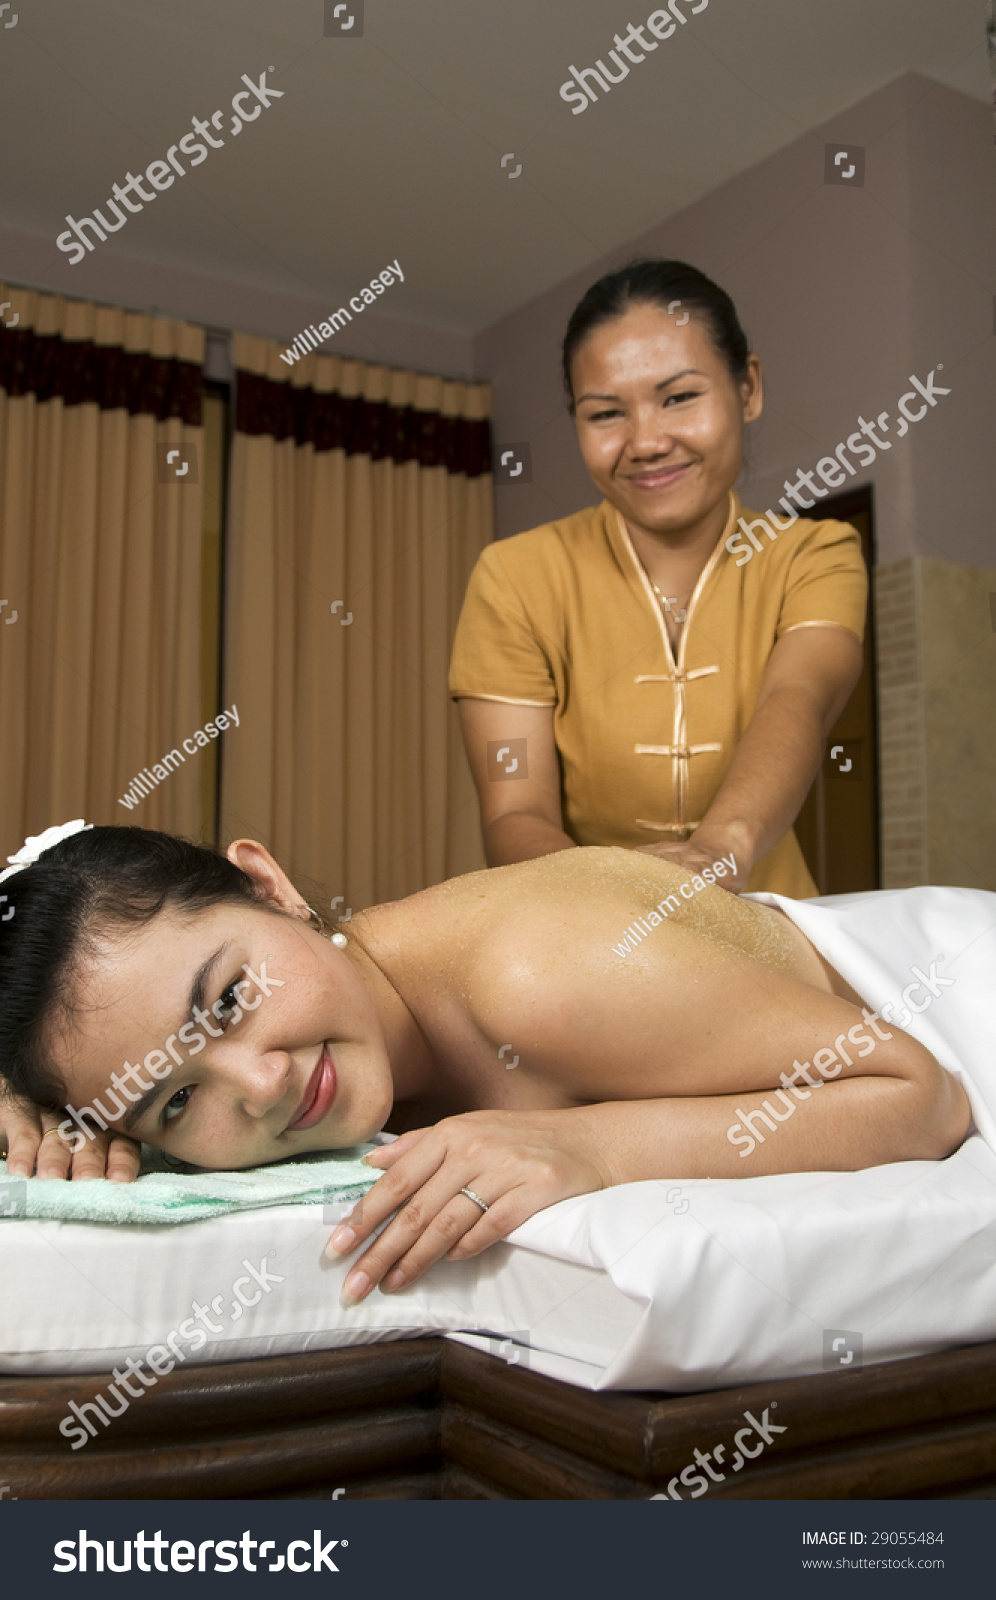 aree thai massage tyskland porr